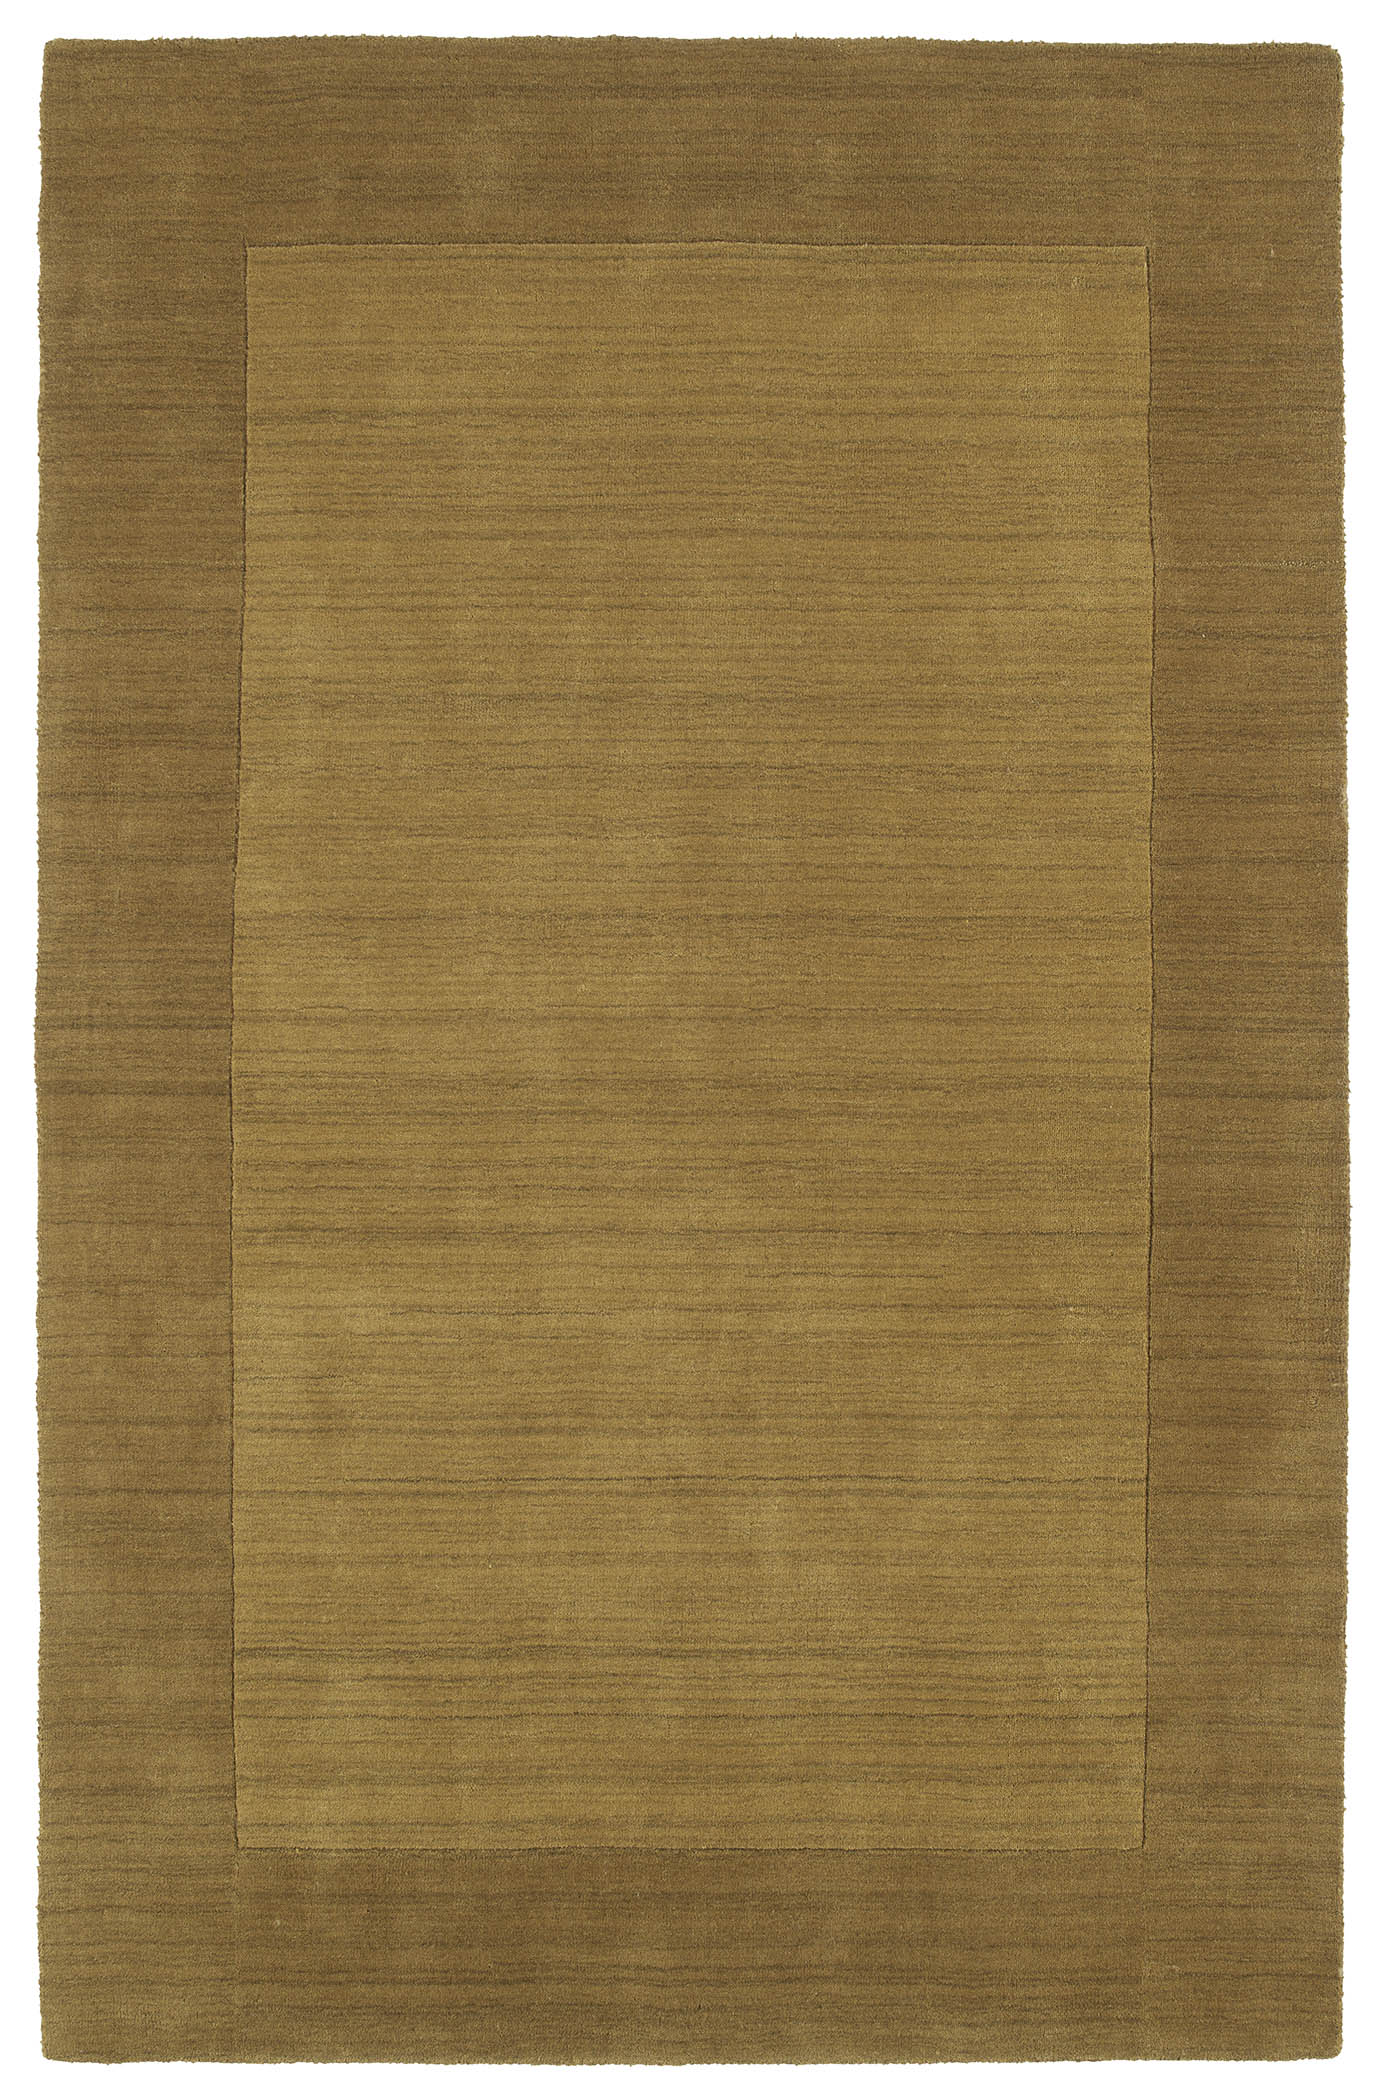 Kaleen Regency 7000 28 Yellow Rug